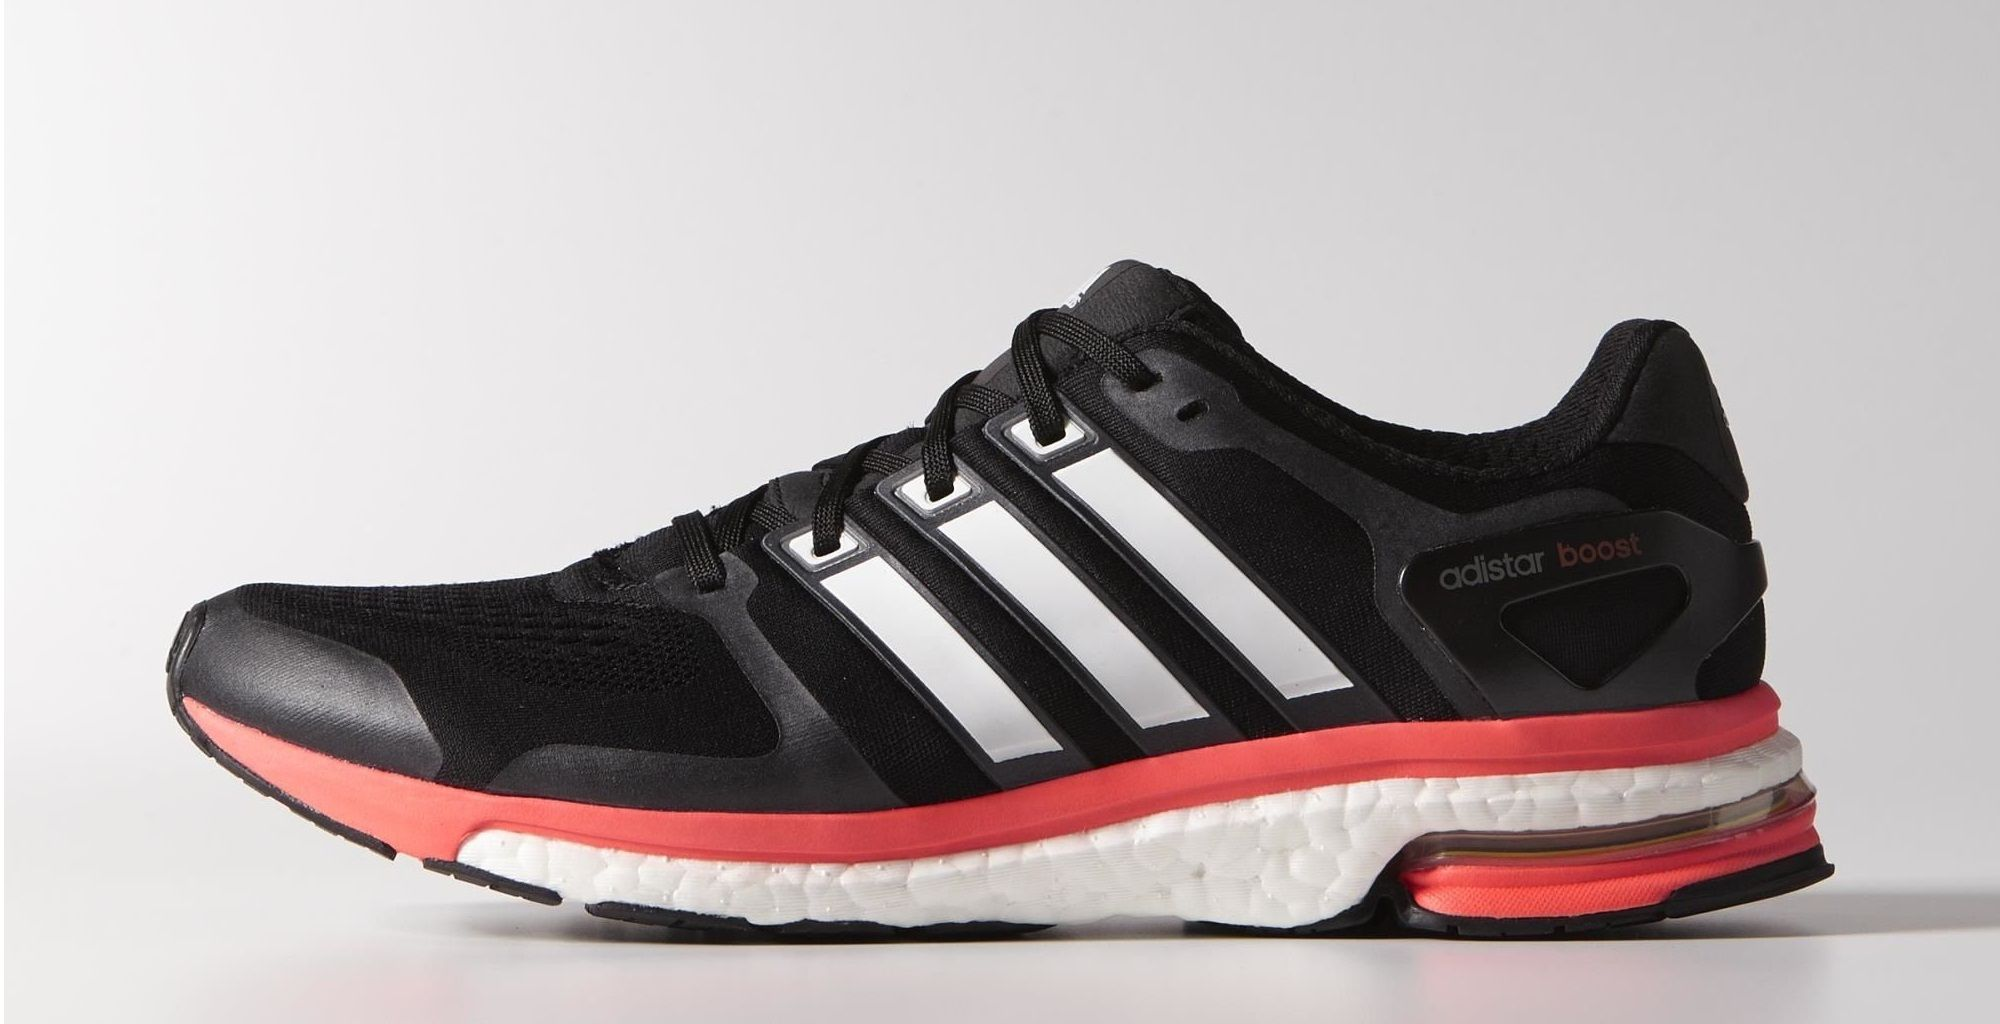 Find your adidas adistar, Boost, Shoes at adidas. All styles and colours  available in the official adidas online store.